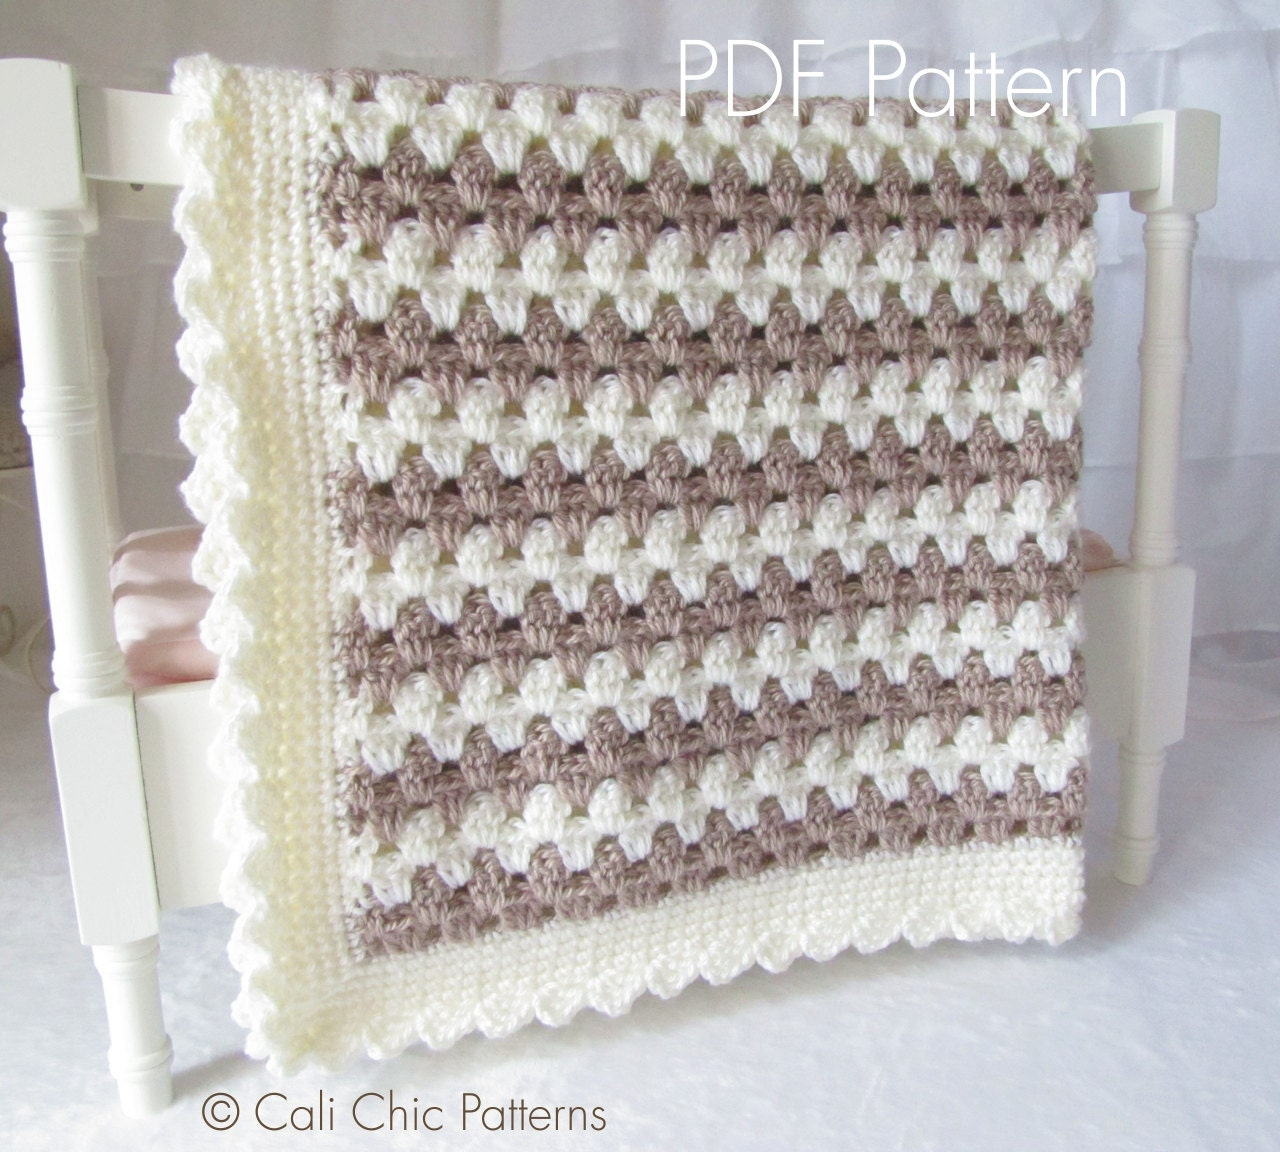 Crochet Pattern 58 Teddy Bear Easy Crochet Baby Blanket